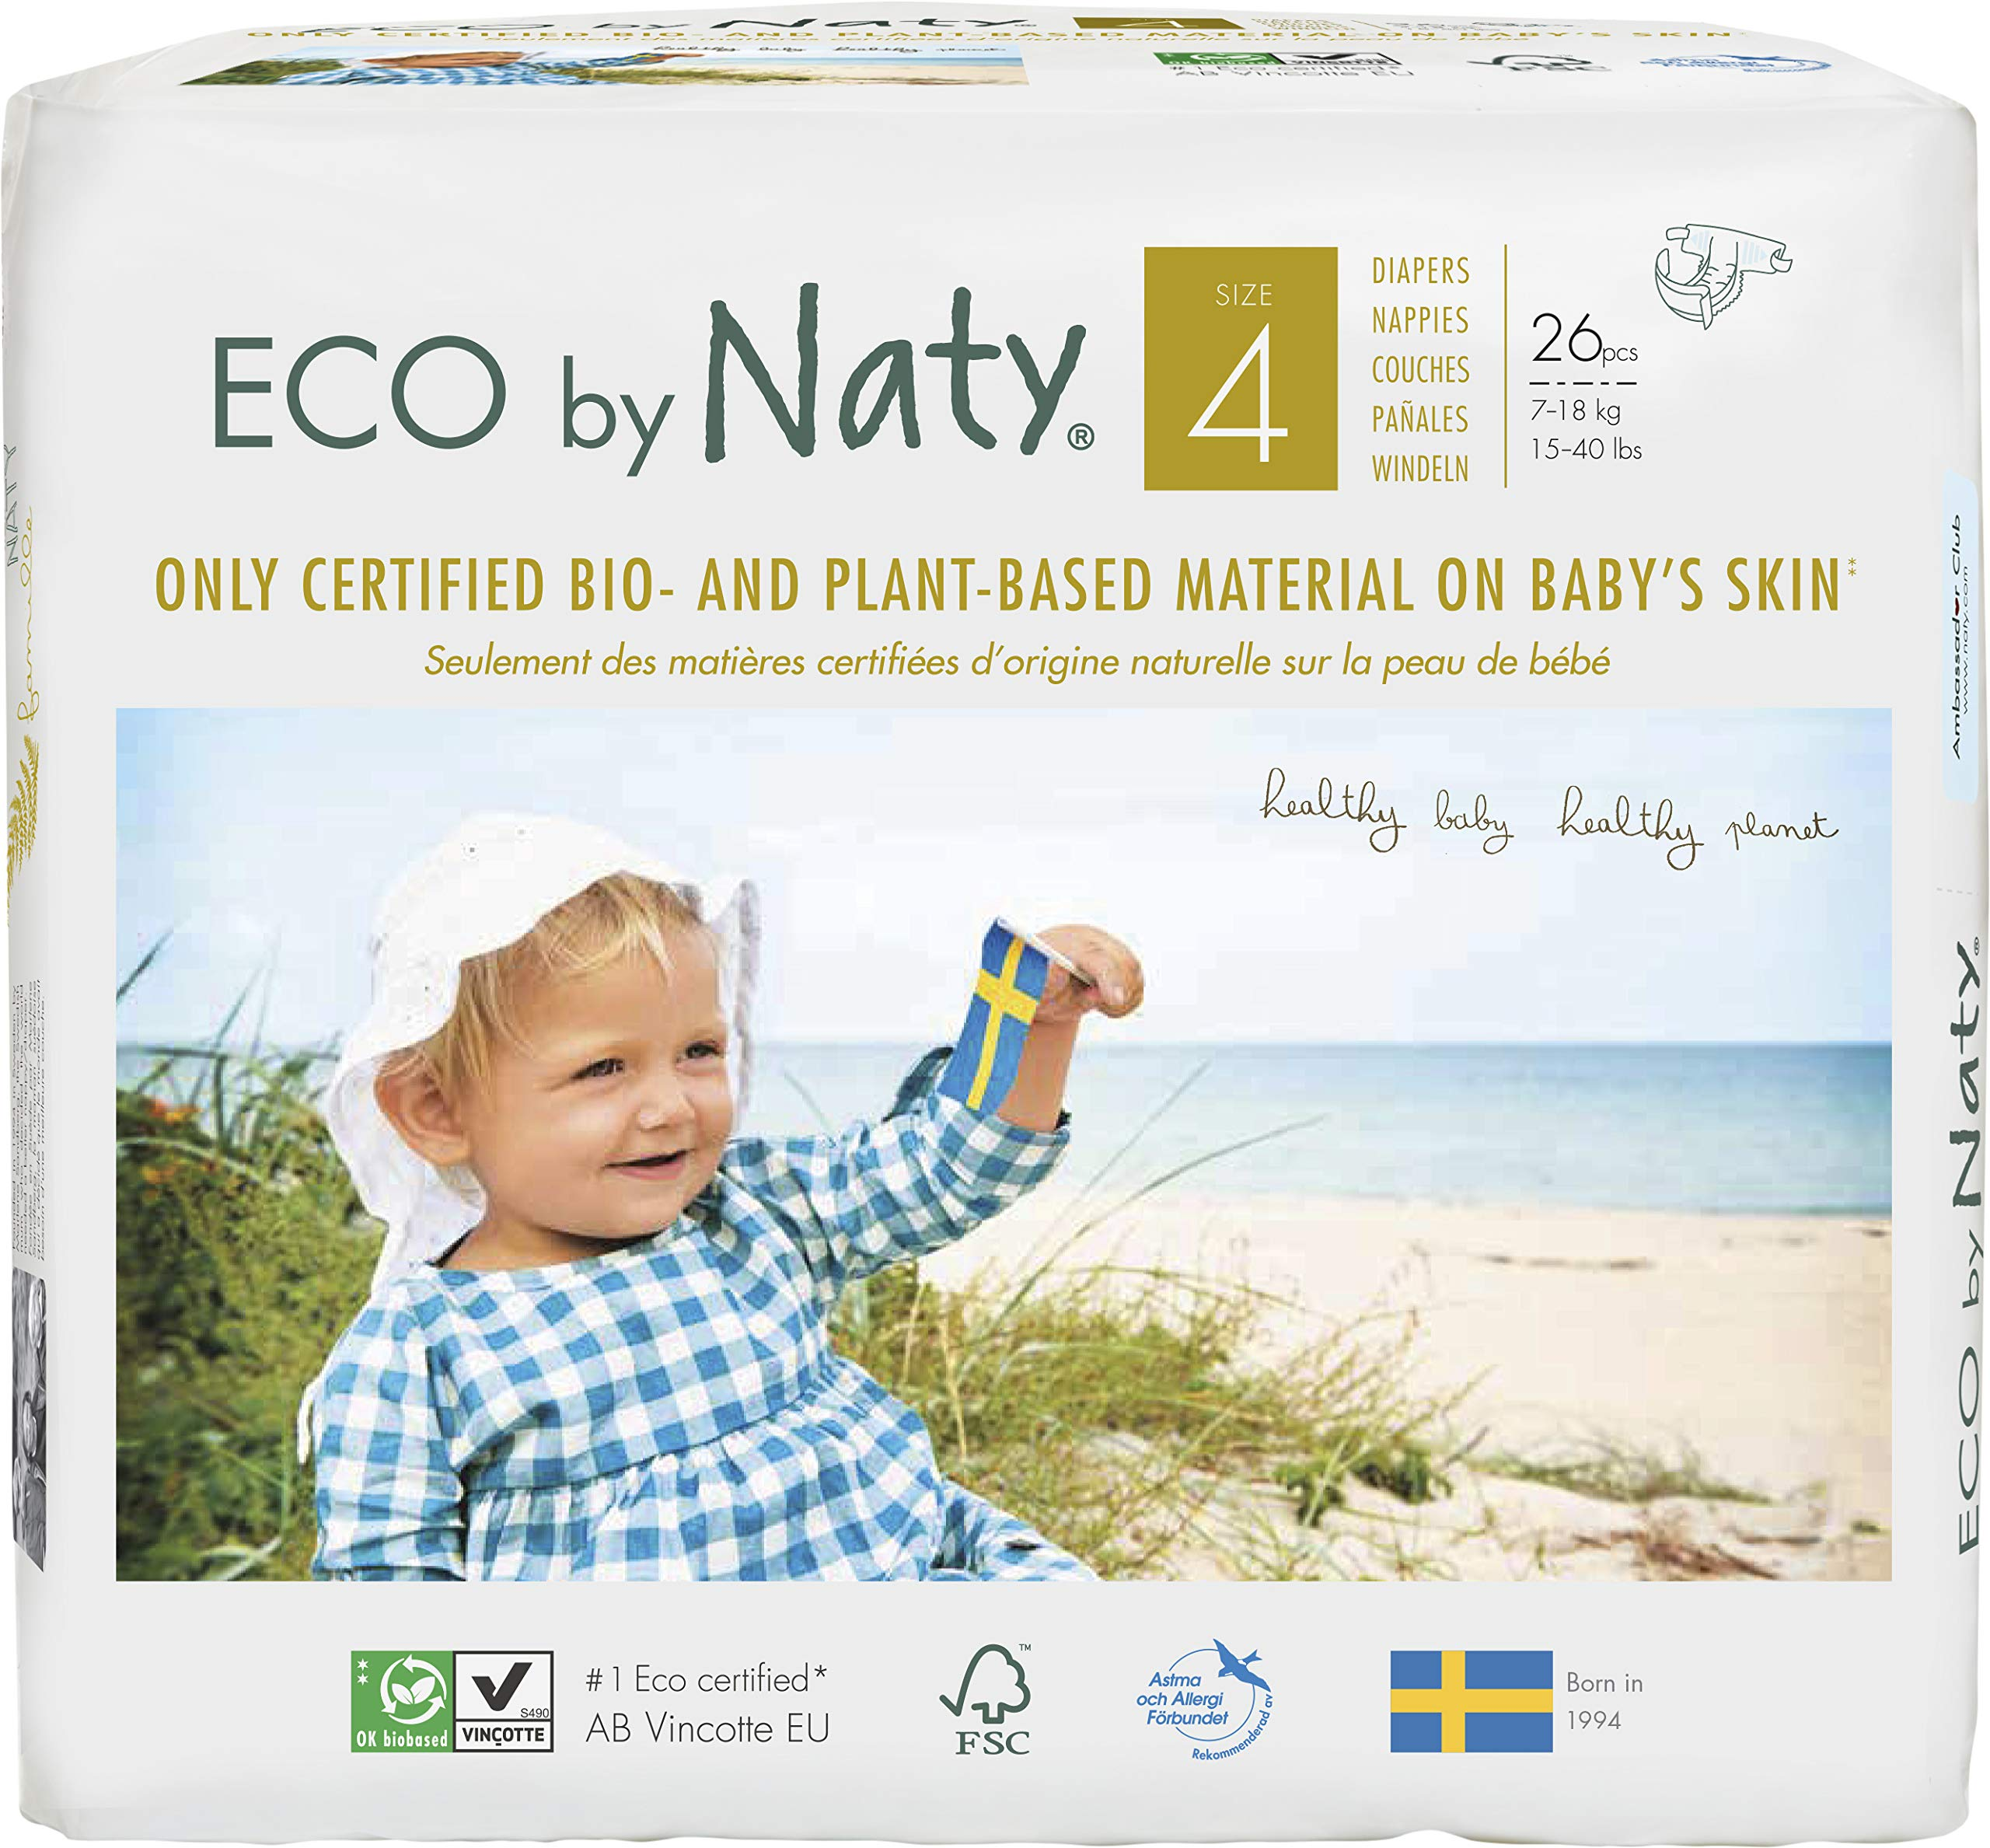 Naty Size 5 Pull-ups Trial Pack 2 Nappies 12 to 18 kg, 26 to 40 lb